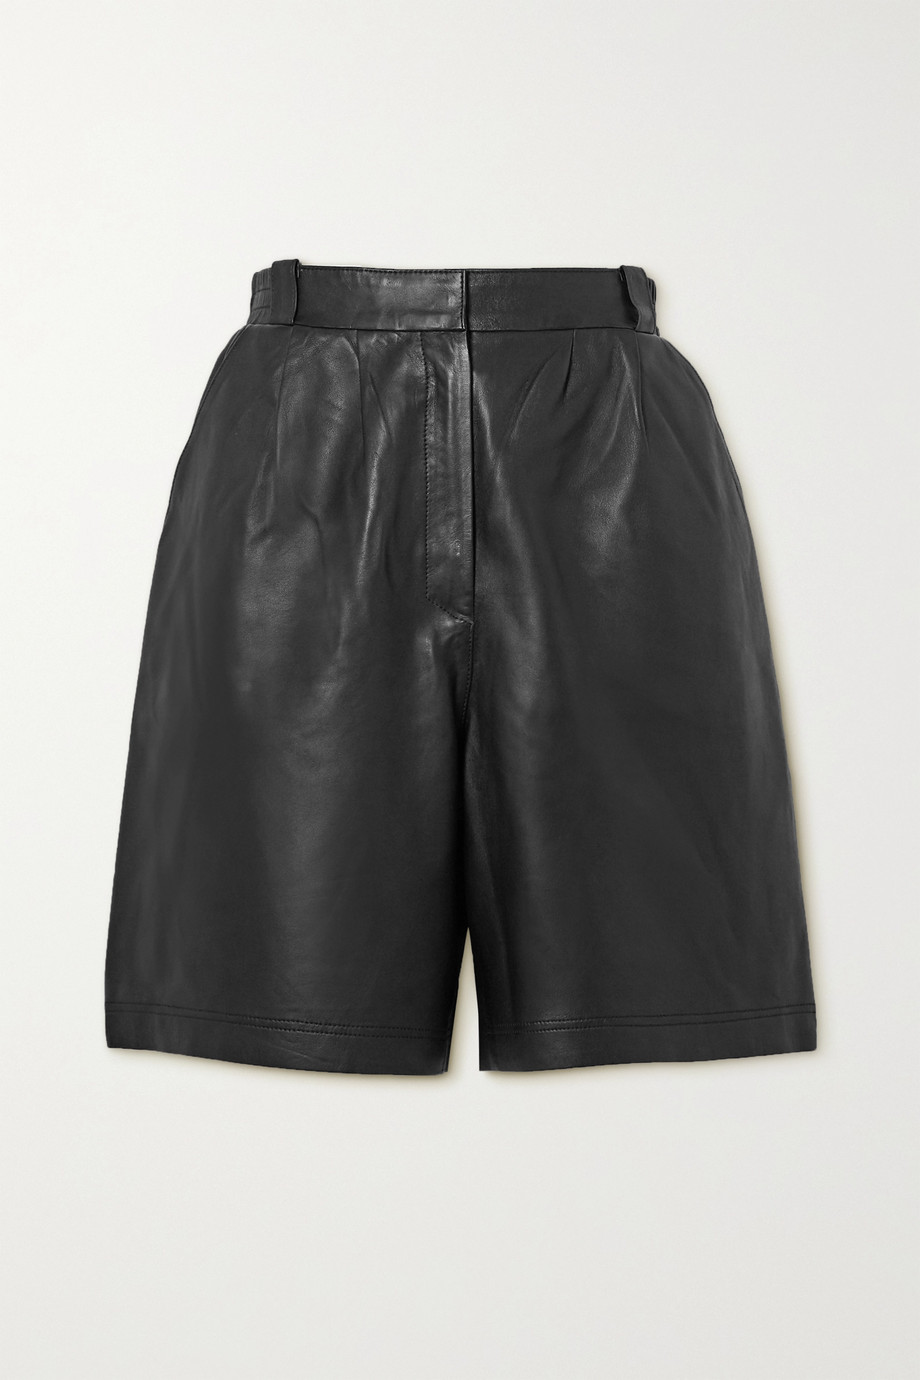 Envelope1976 + NET SUSTAIN leather shorts